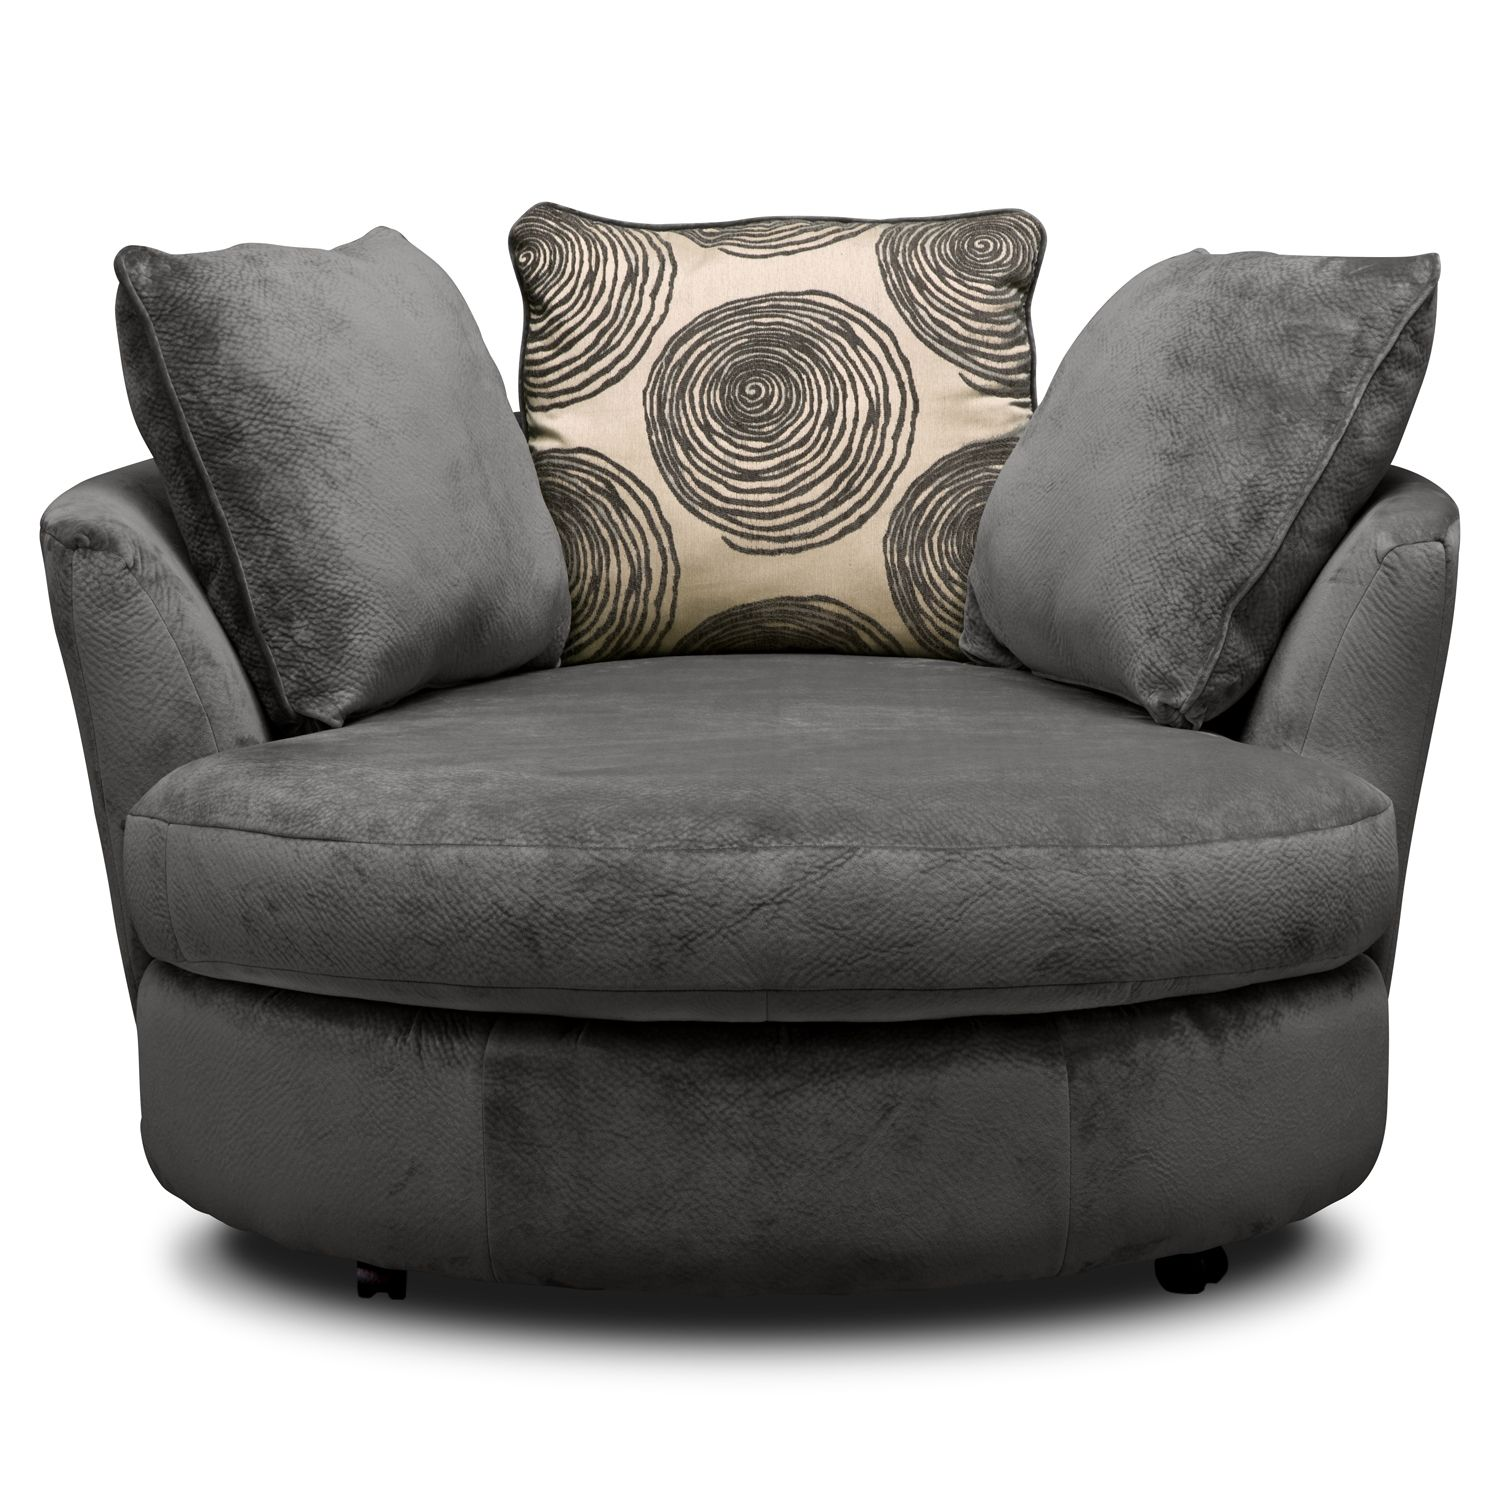 Great Living Room Furniture   Cordelle Swivel Chair   Gray. Our Next Purchase For  The House